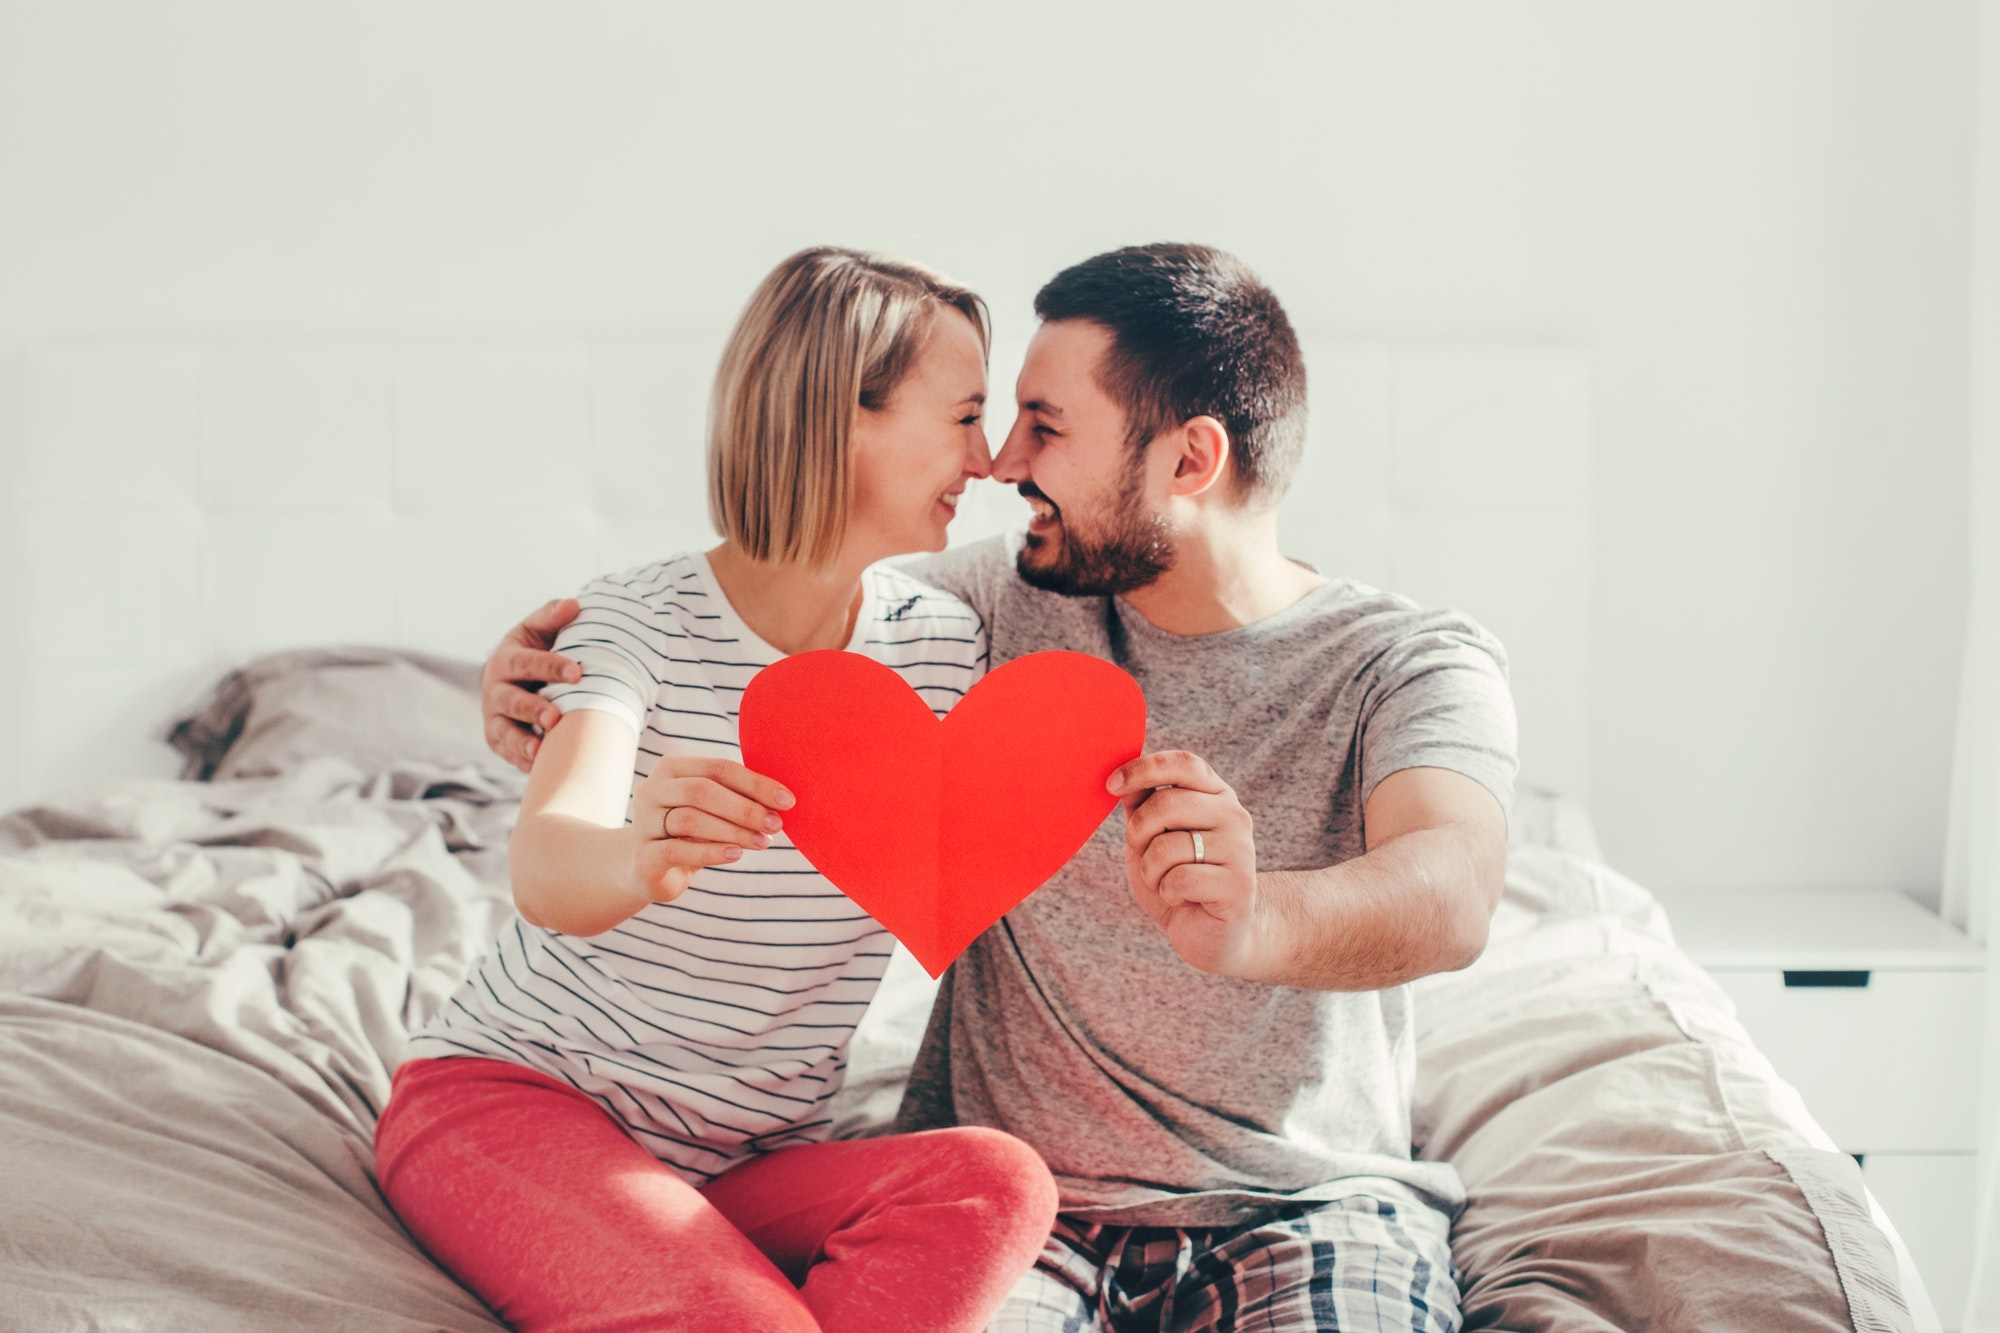 couple in love understanding each other's point of view